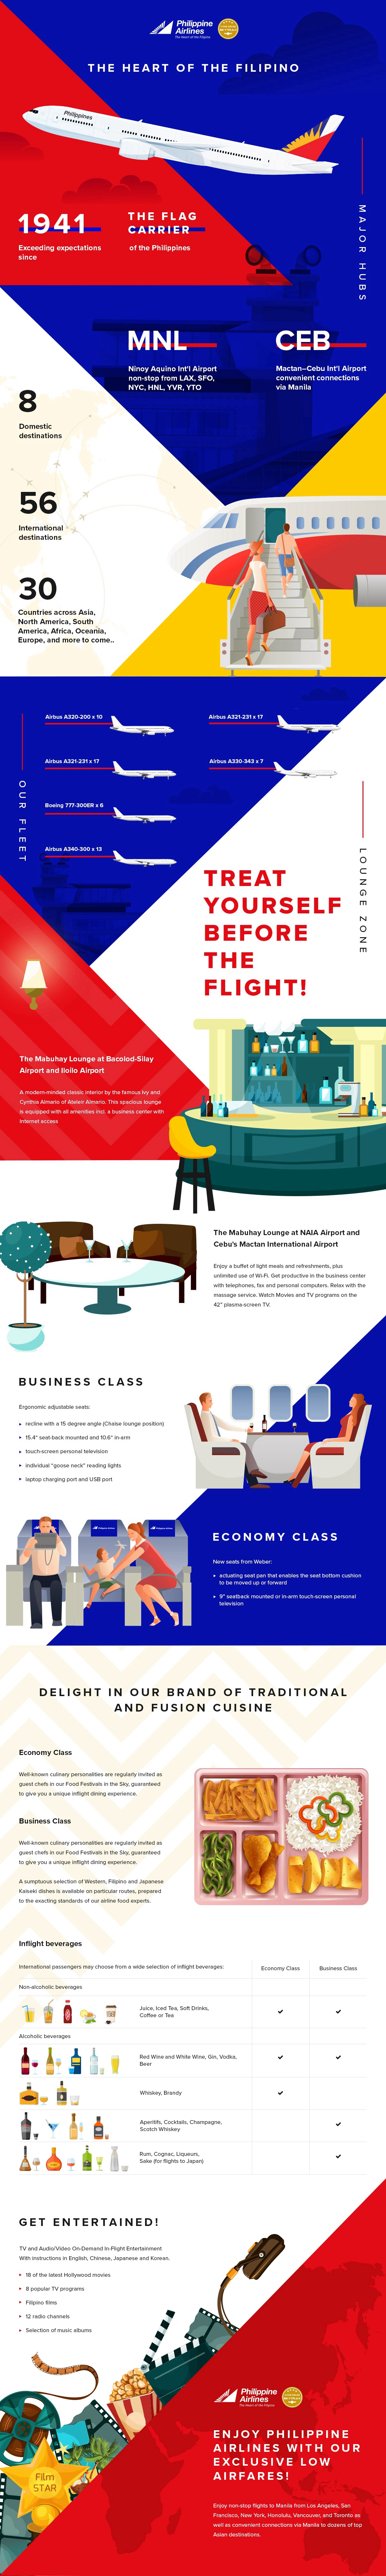 About Philippine Airlines Infographic